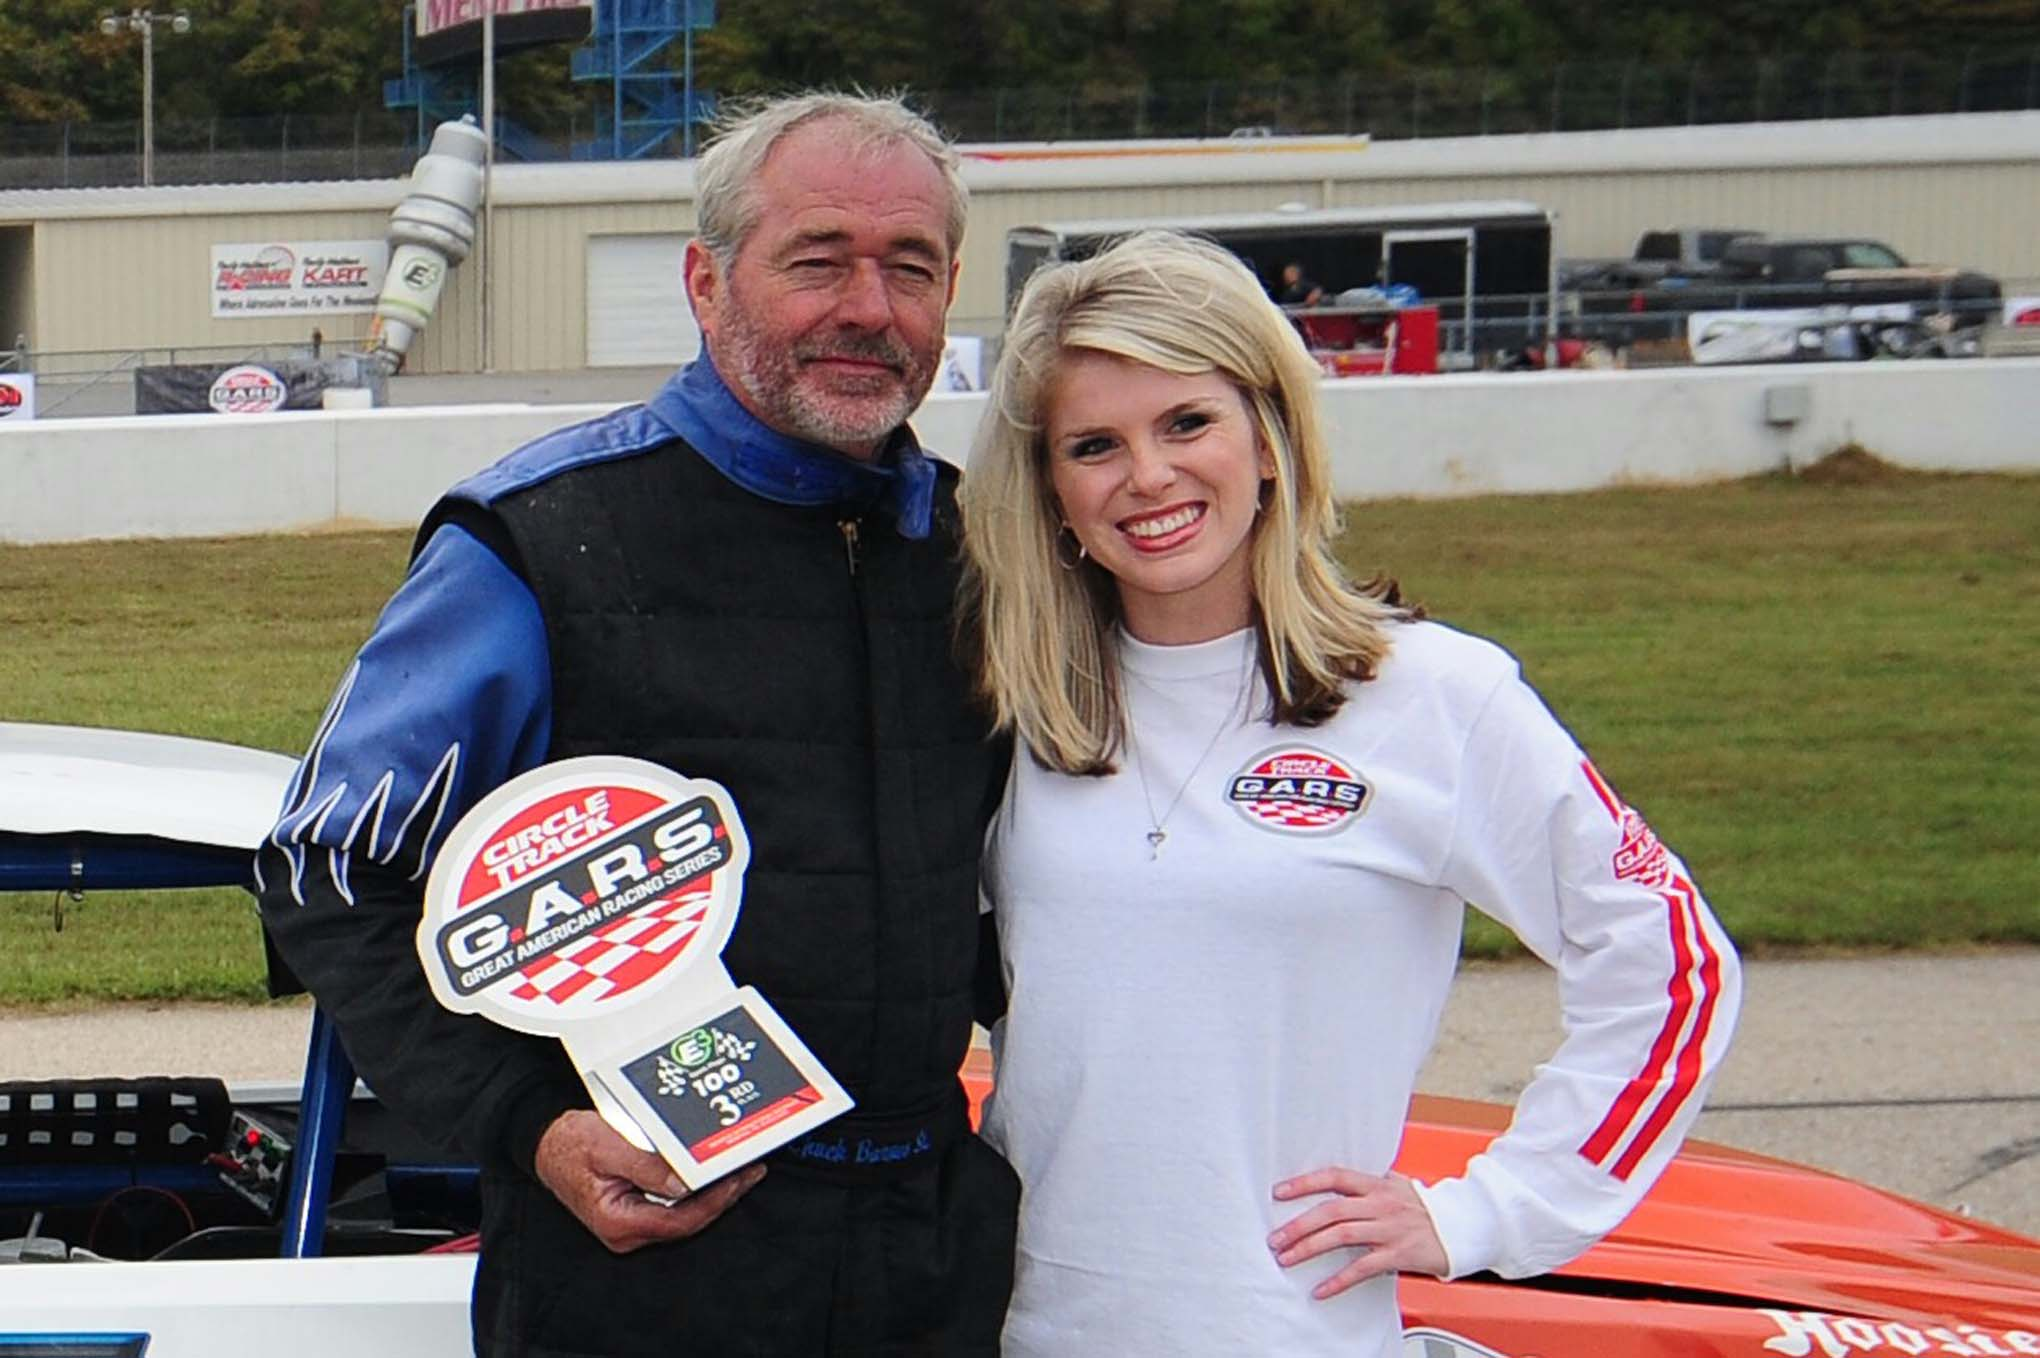 Chuck Barnes, Sr., had an adventurous day. He finished third.